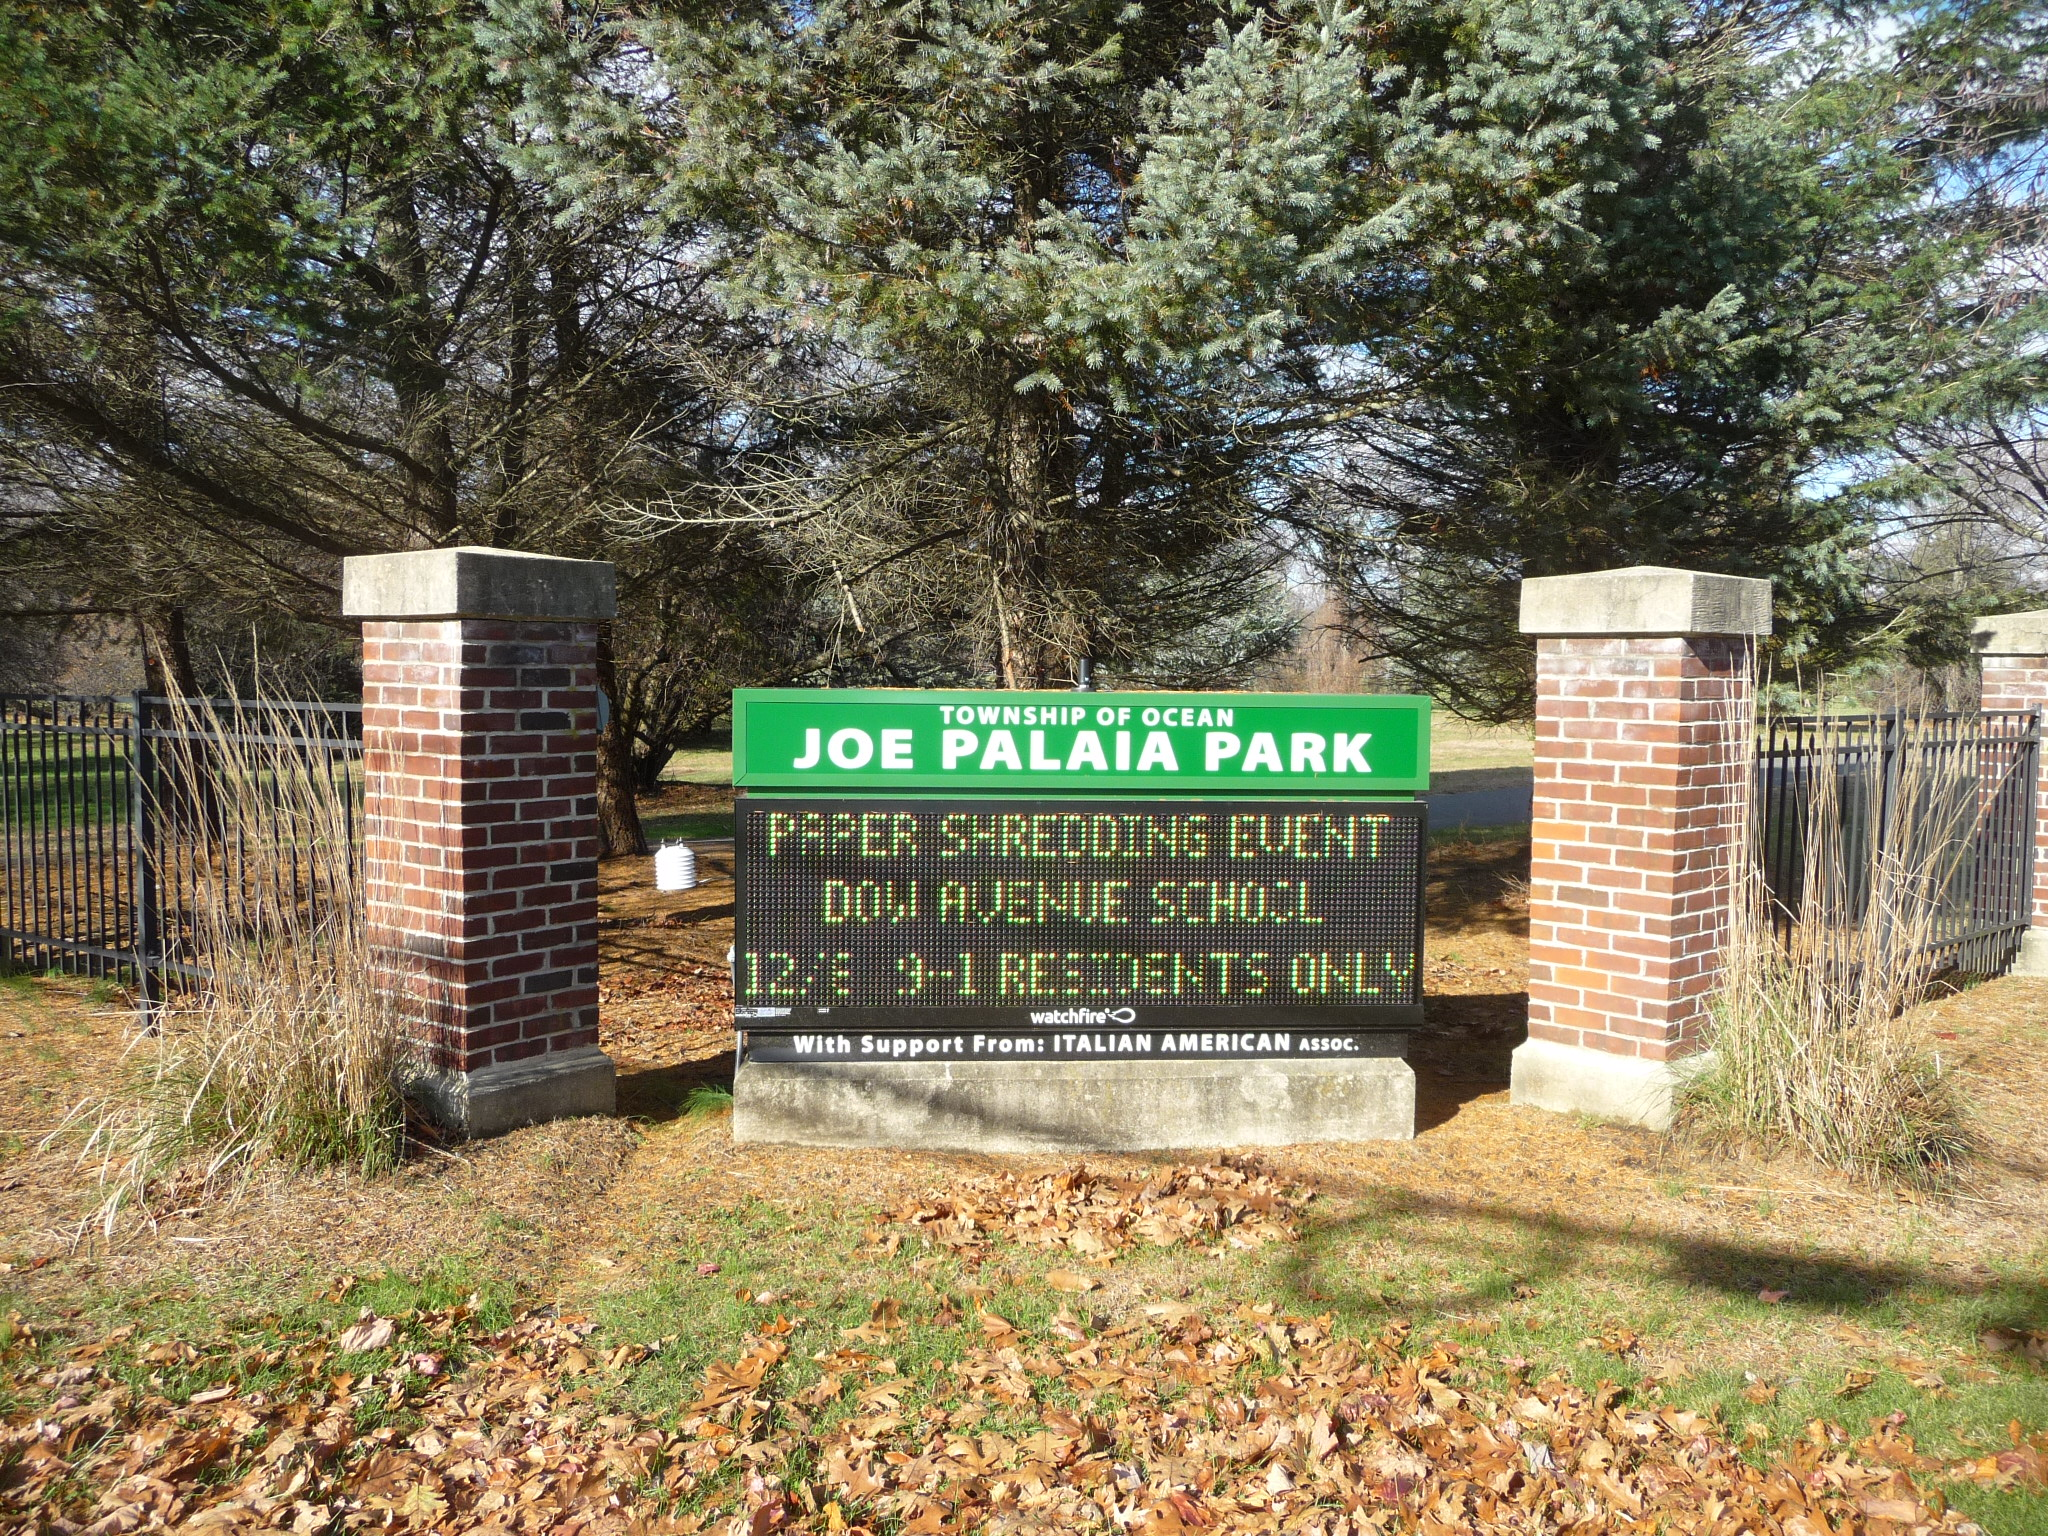 Joseph Palaia covers over 200 acres and is the largest recreational area in Oakhurst.